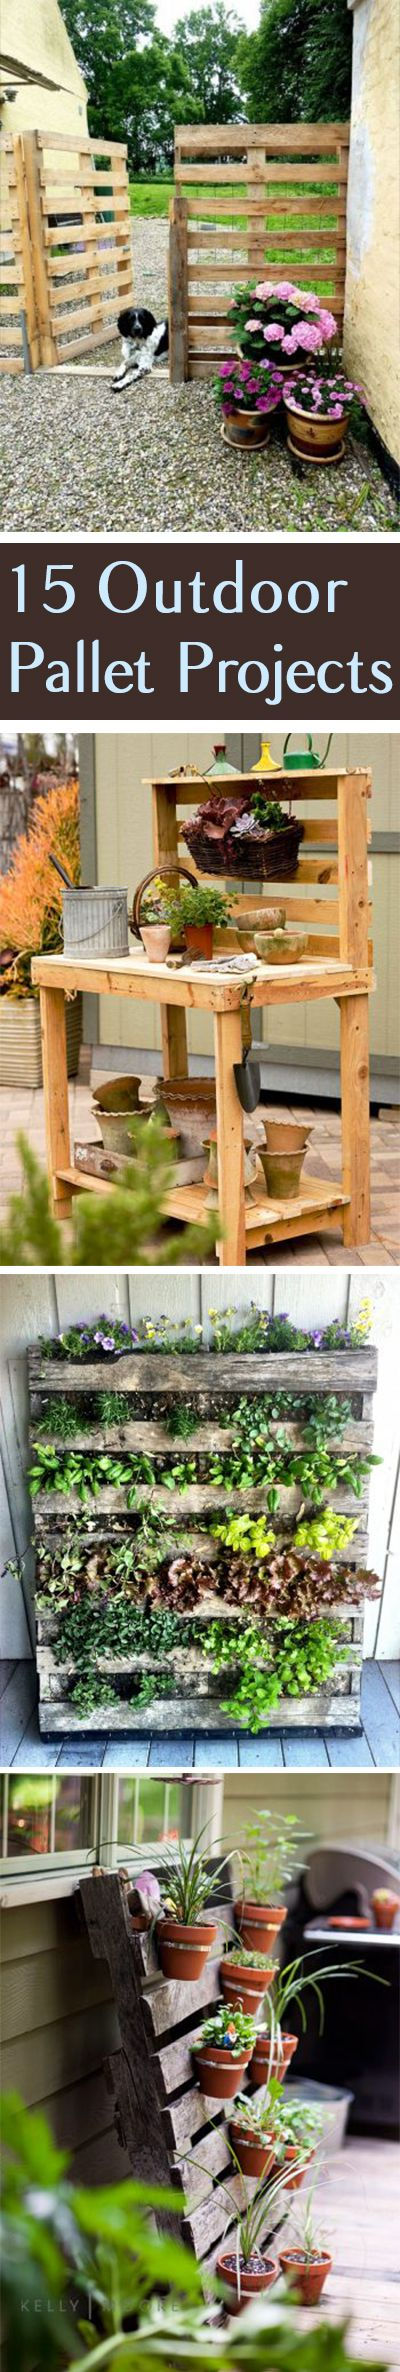 one of the best outdoor projects to do with a pallet is to make a garden